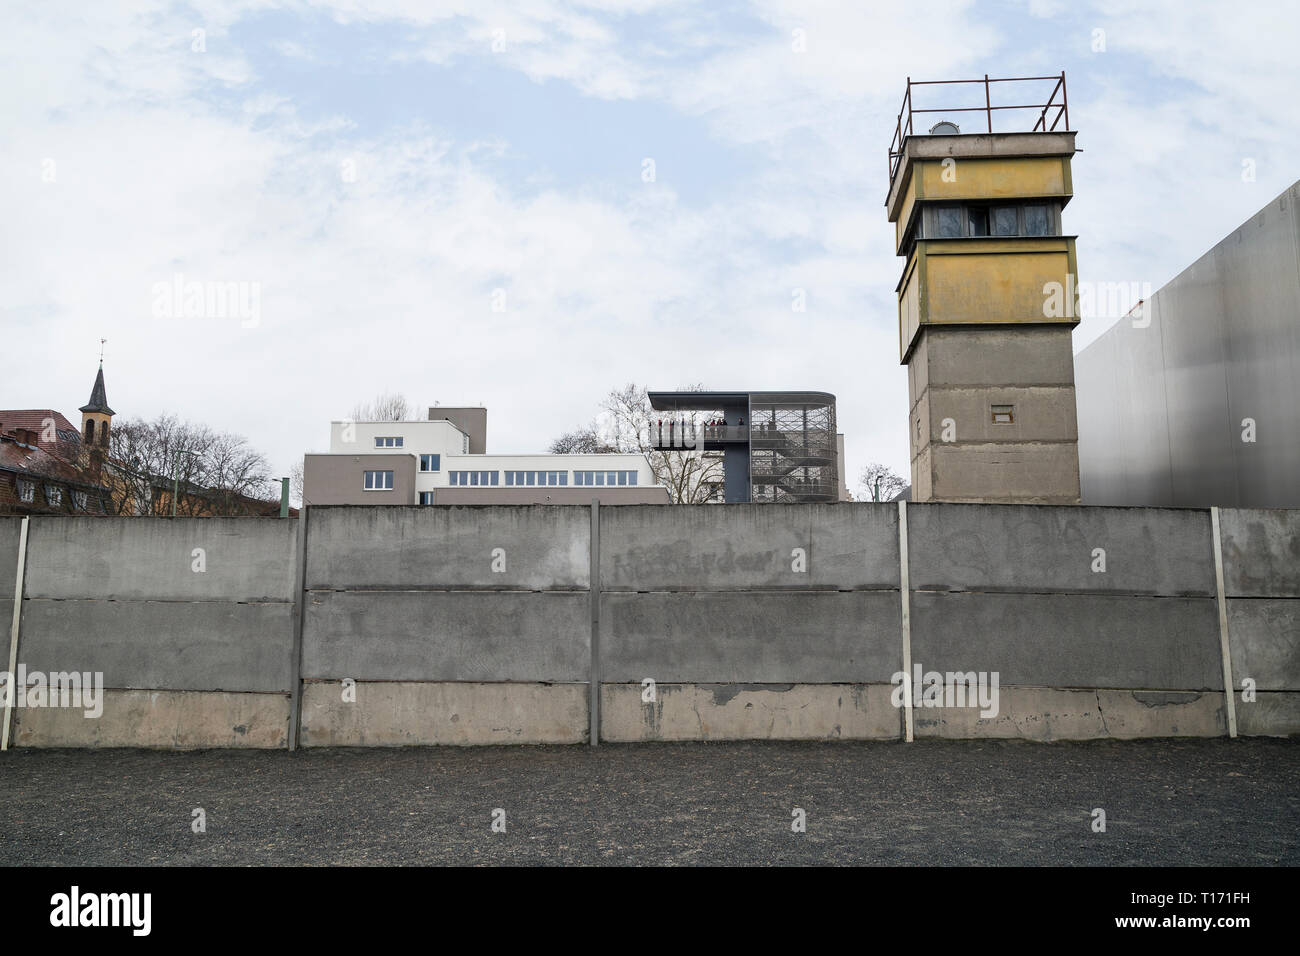 Berlin Wall and watchtower at the Berlin Wall Memorial (Berliner Mauer) in Berlin, Germany. Documentation Center and viewing platform in background. - Stock Image